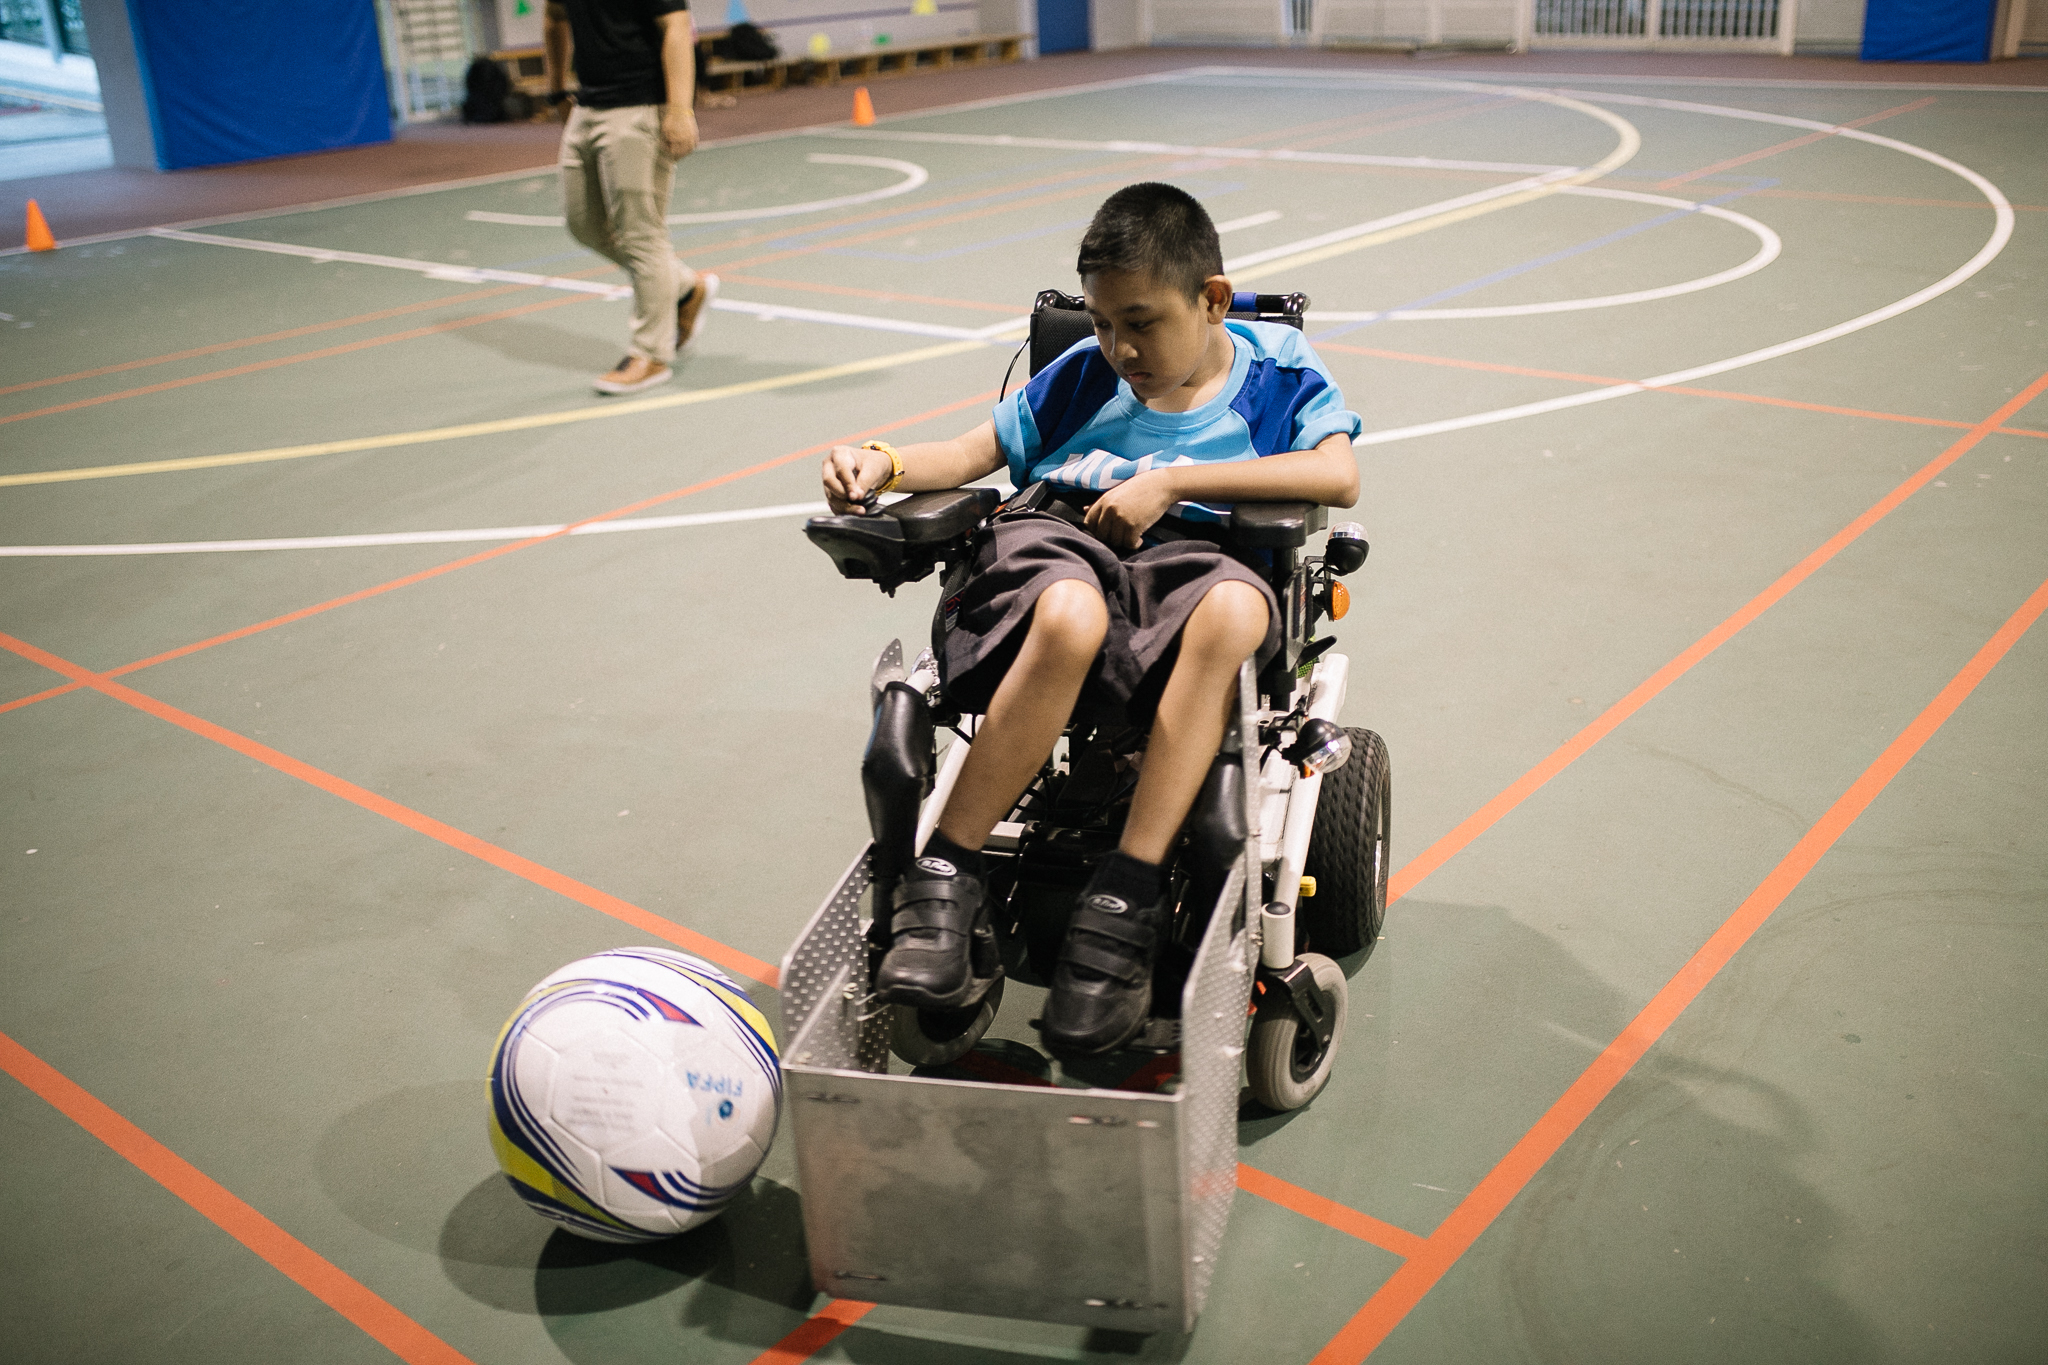 Danial at the training session for his favorite programme - Power Soccer